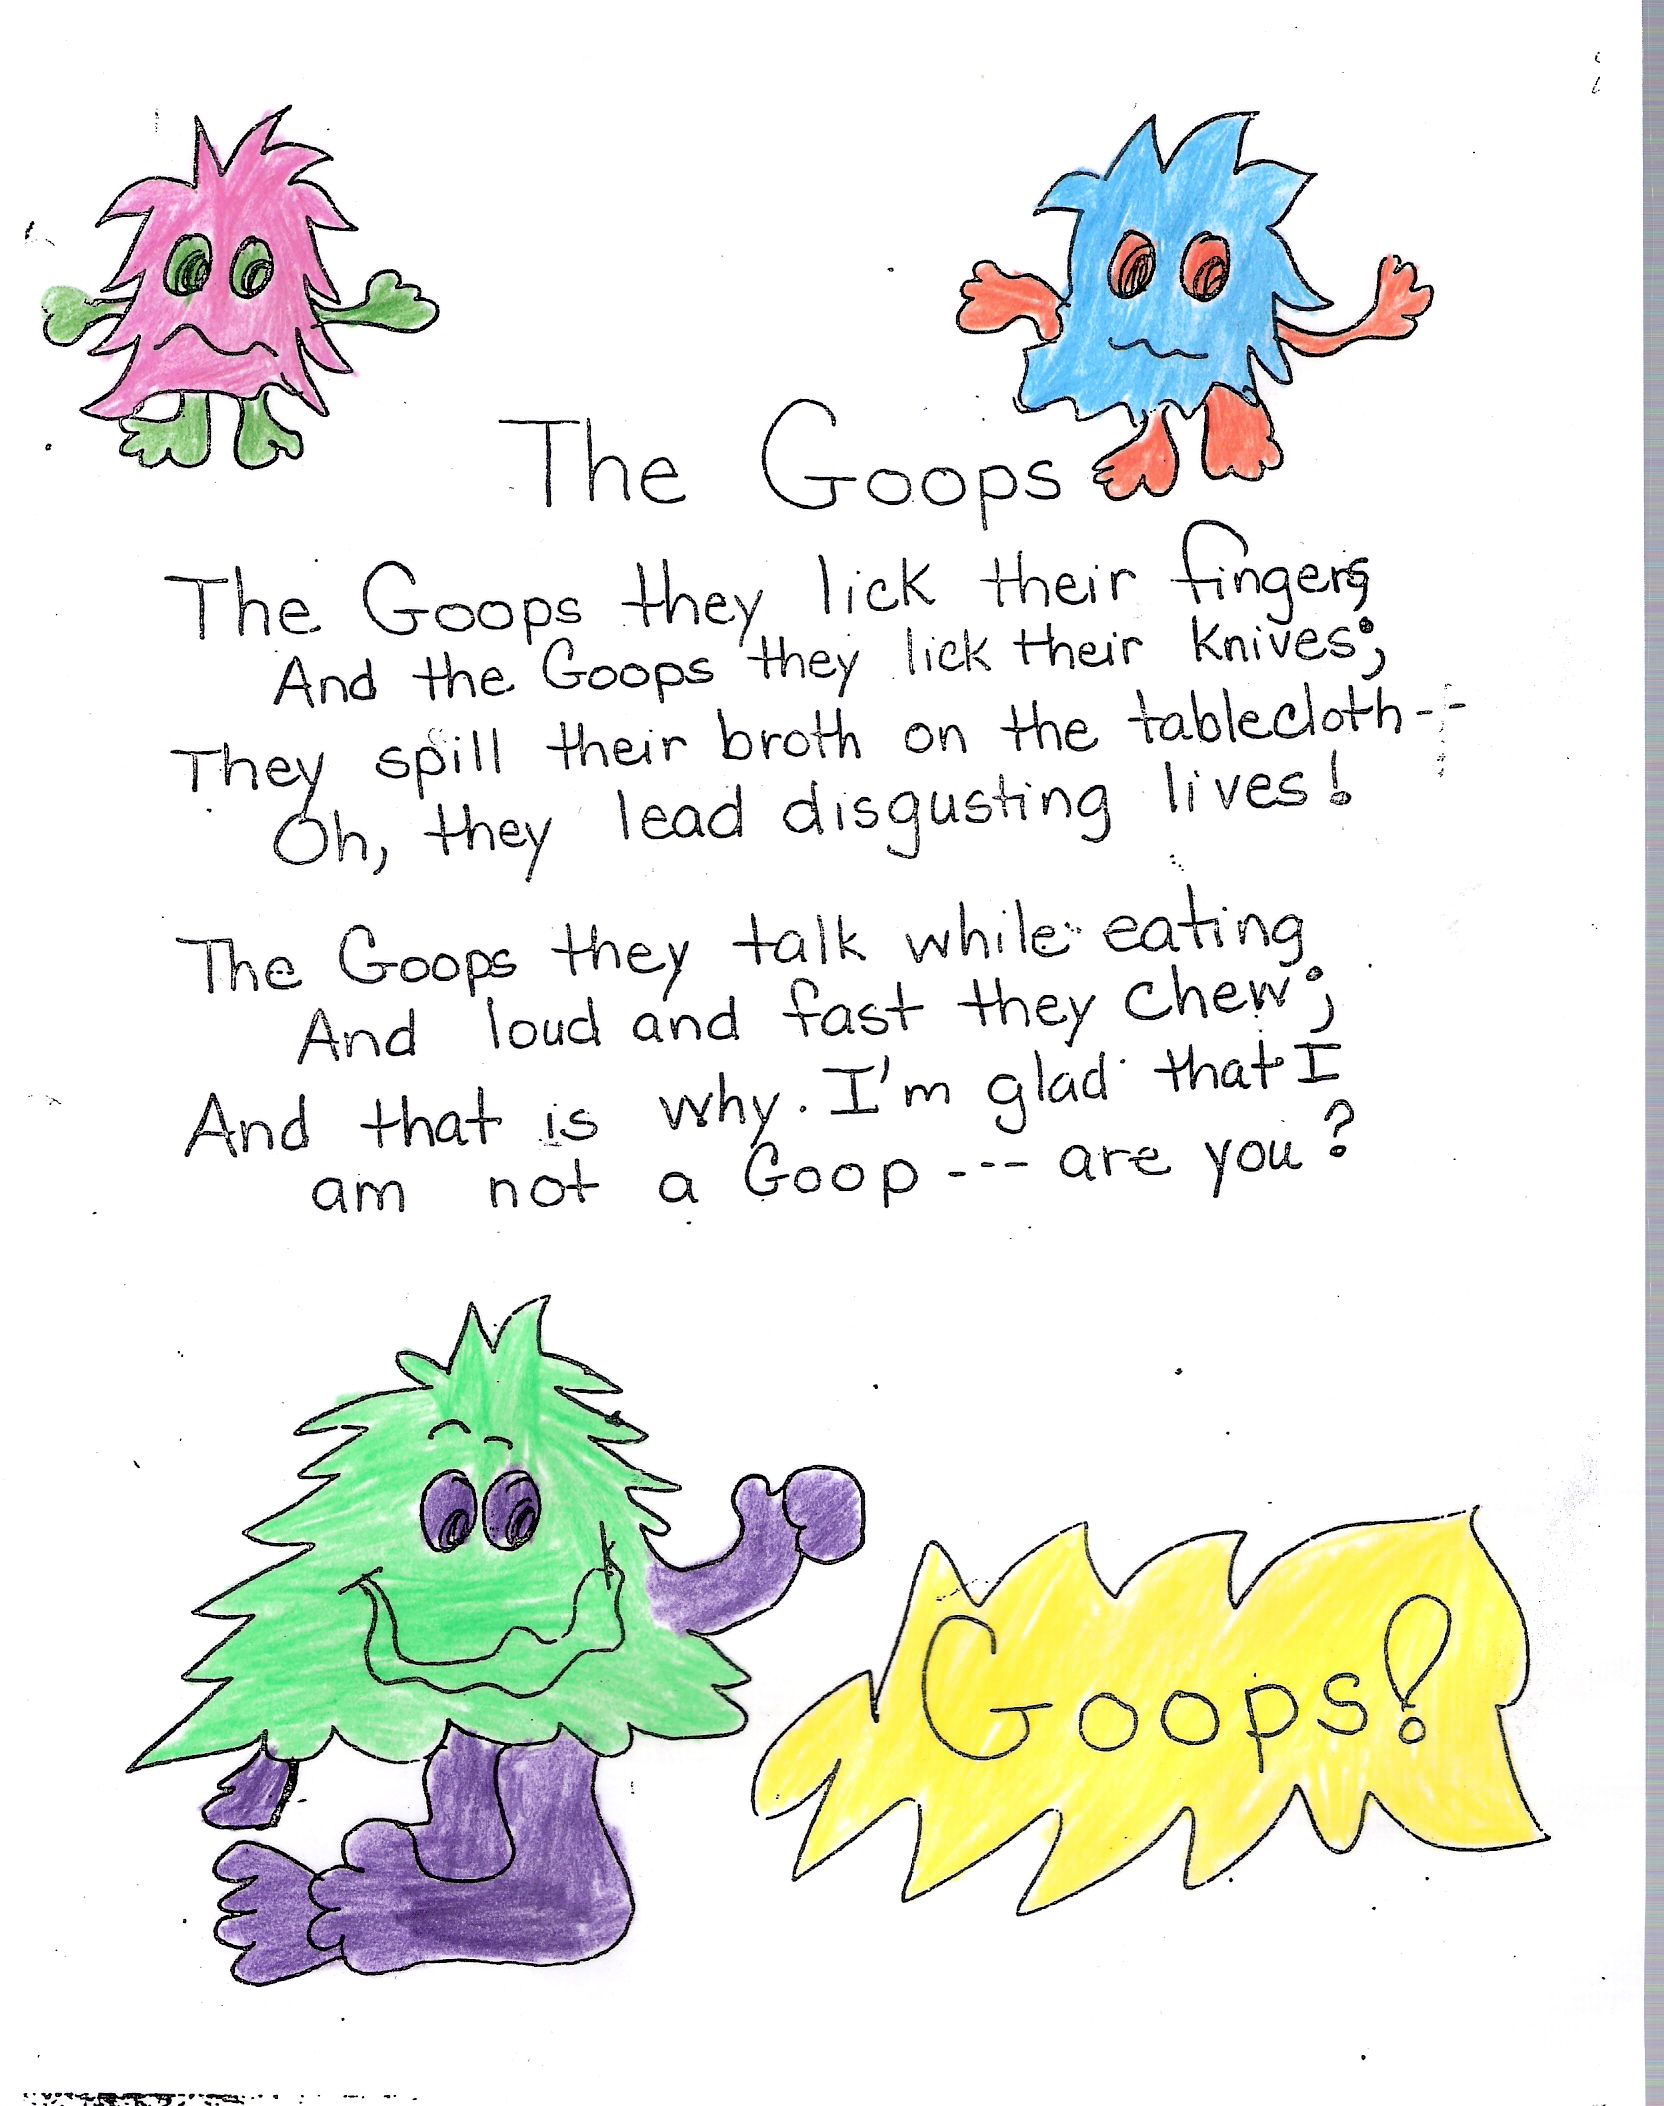 Poem No 11 The Goops